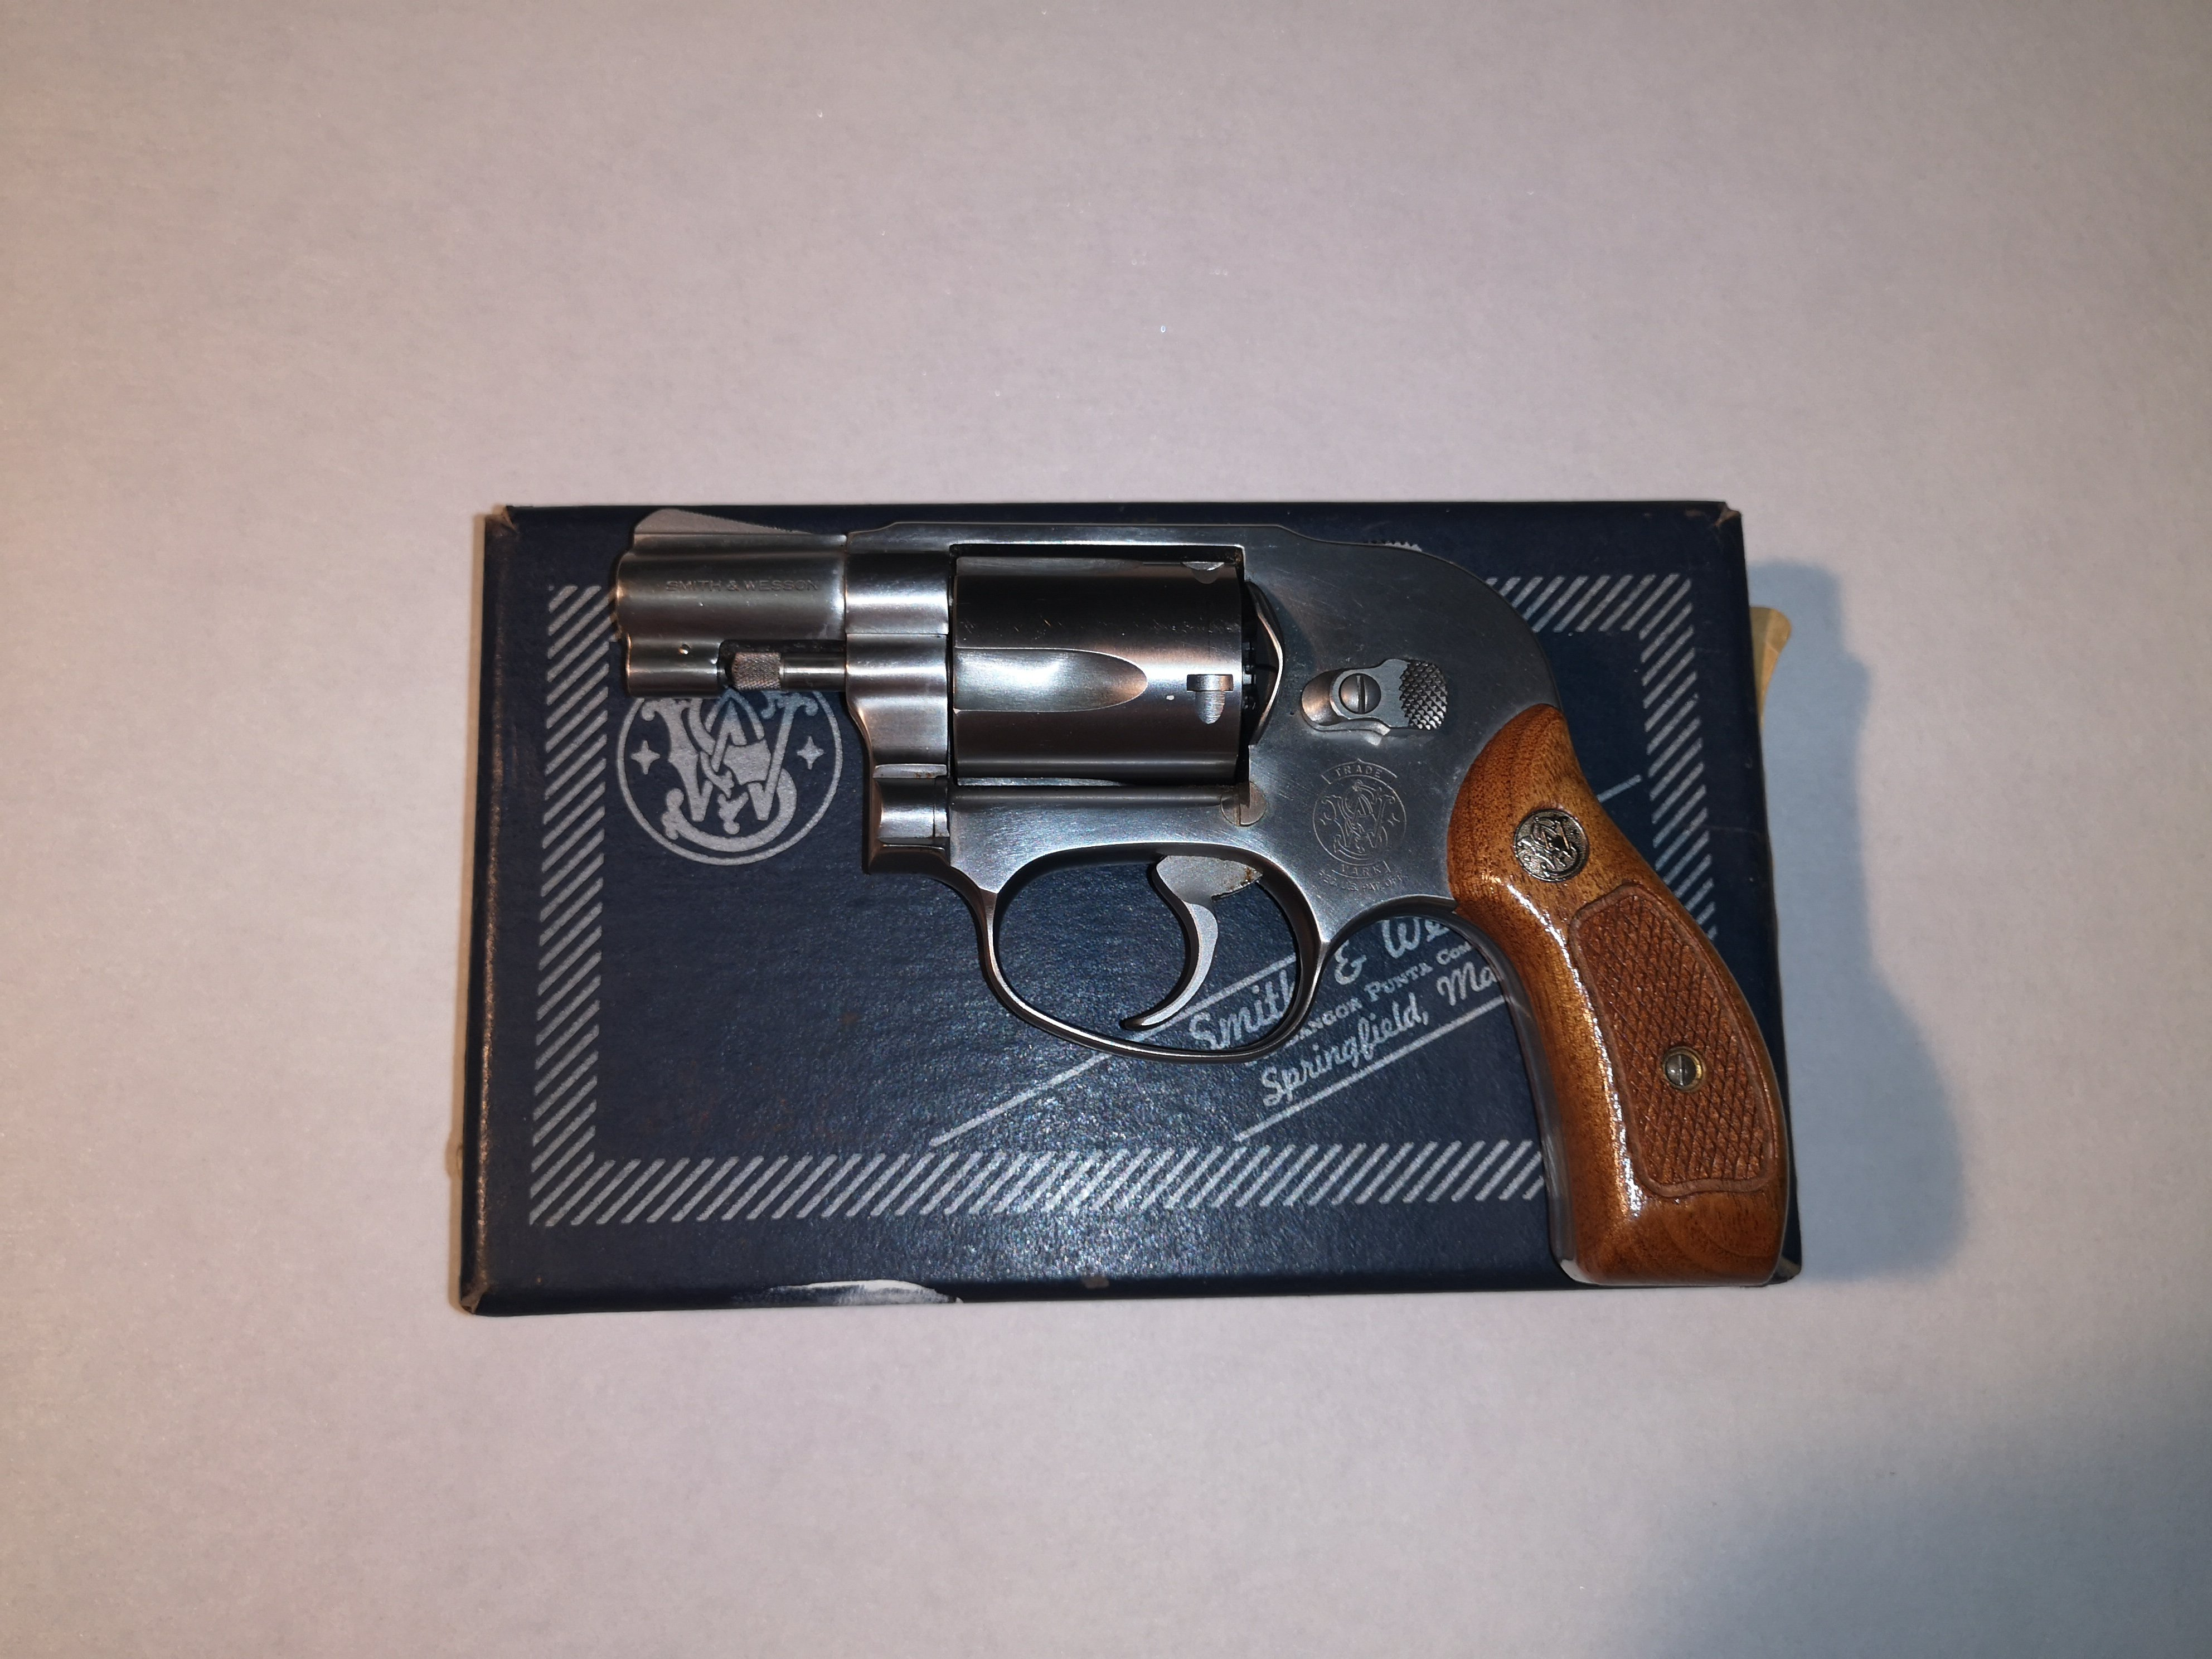 Smith & Wesson Model Bodyguard - kal. .38 Special